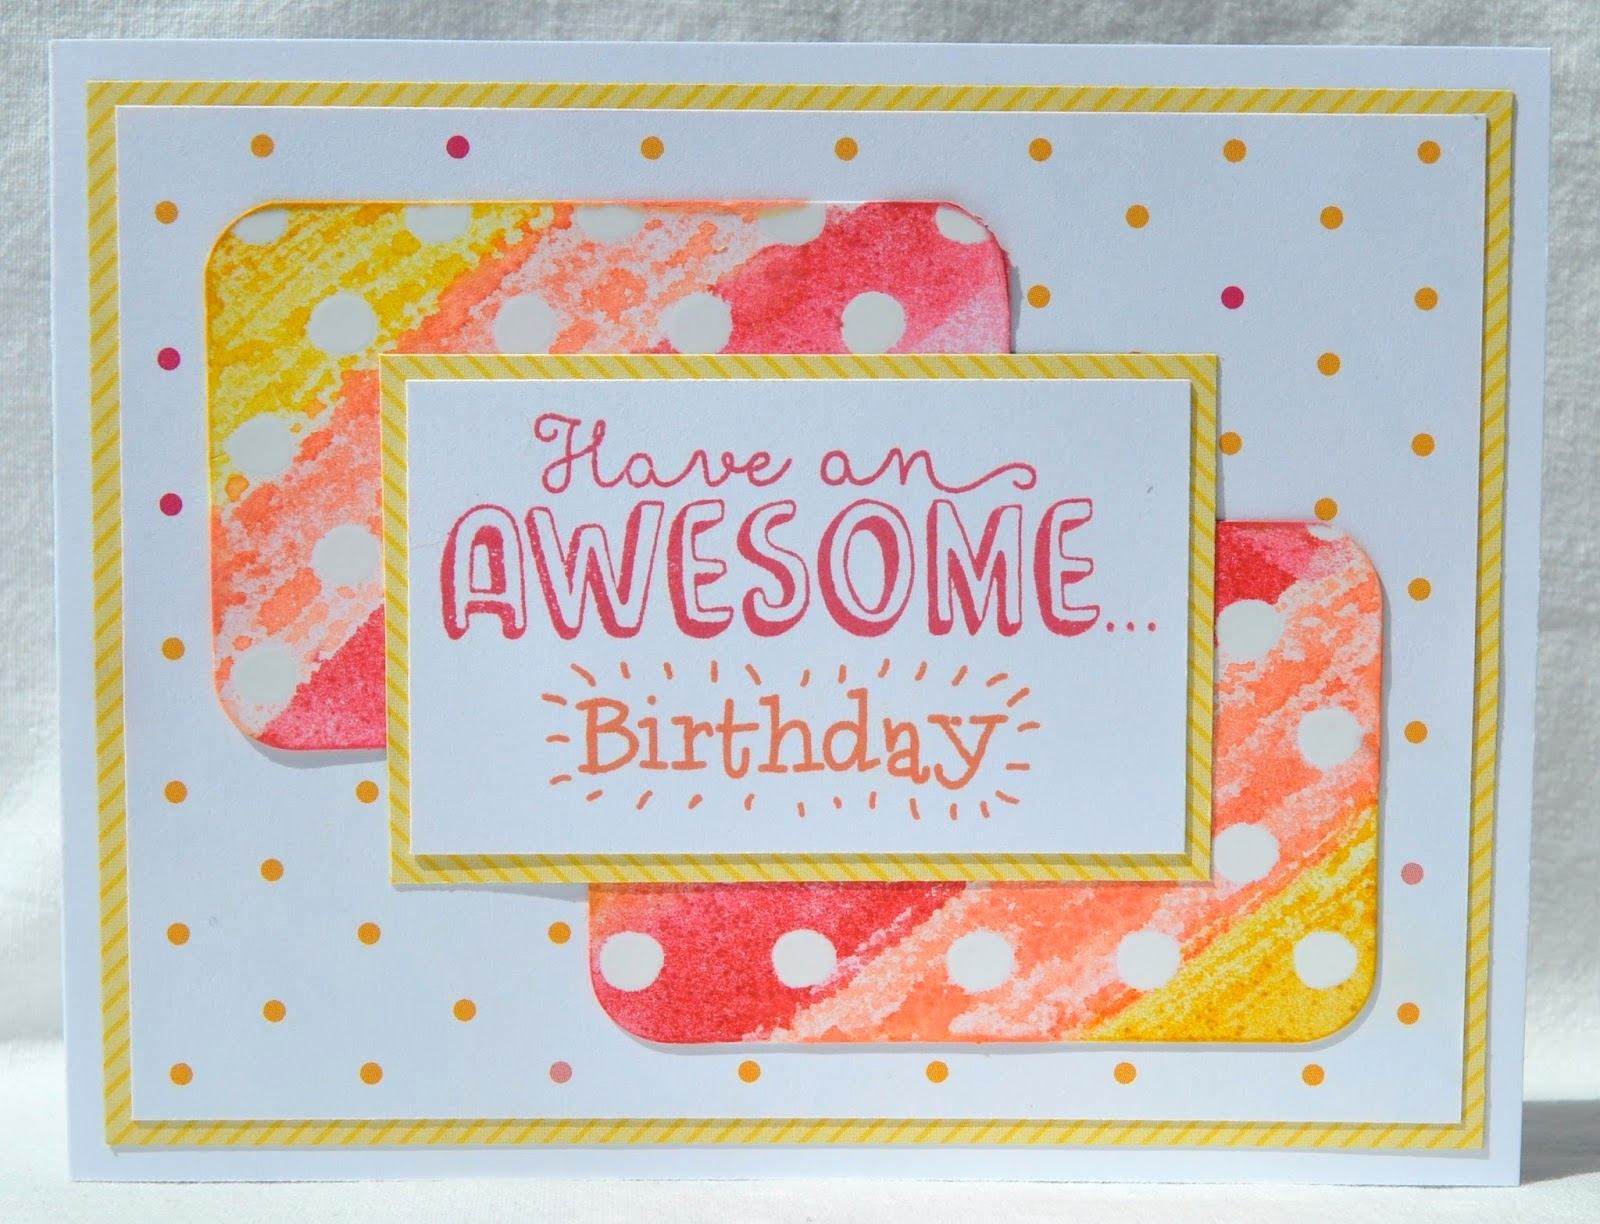 77 birthday card ; cool-birthday-cards-awesome-awesome-birthday-cards-lovable-dat-s-my-style-awesome-birthday-of-cool-birthday-cards